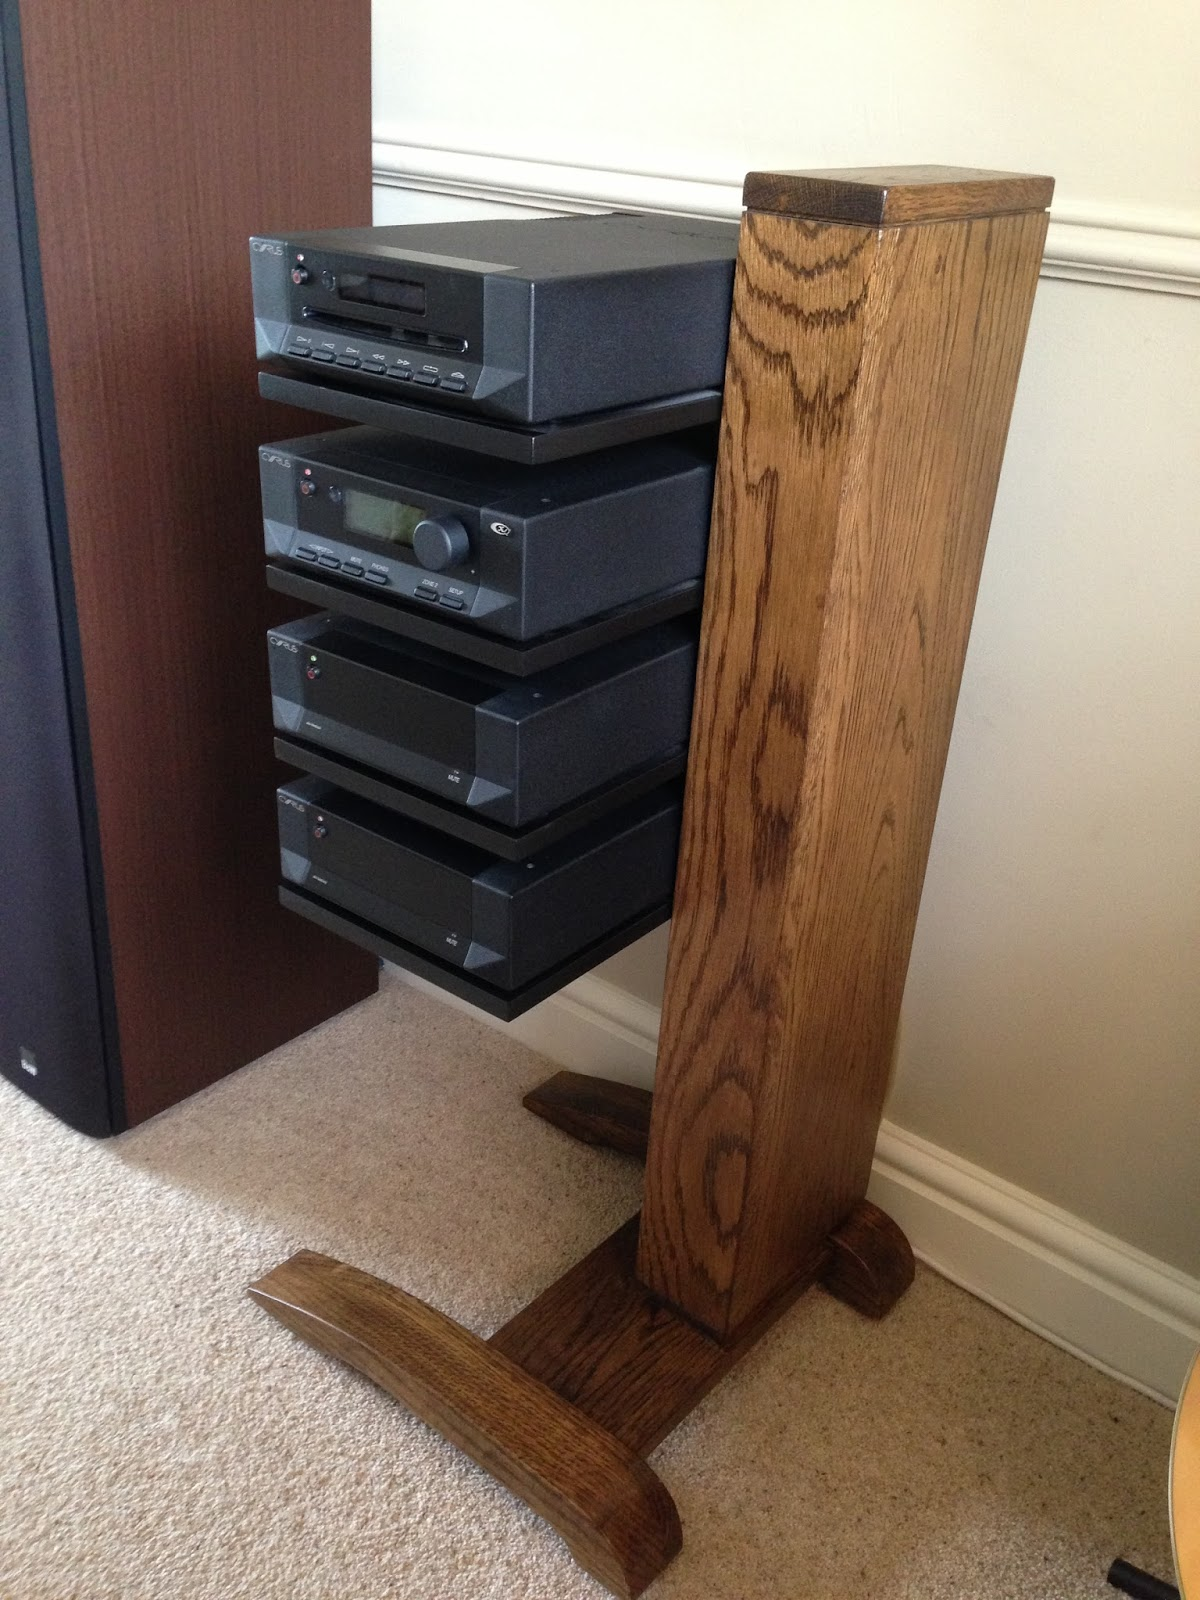 Hifi Rack Design Hifi Rack Design Great Hifi Racks Podium Reference With Hifi Rack